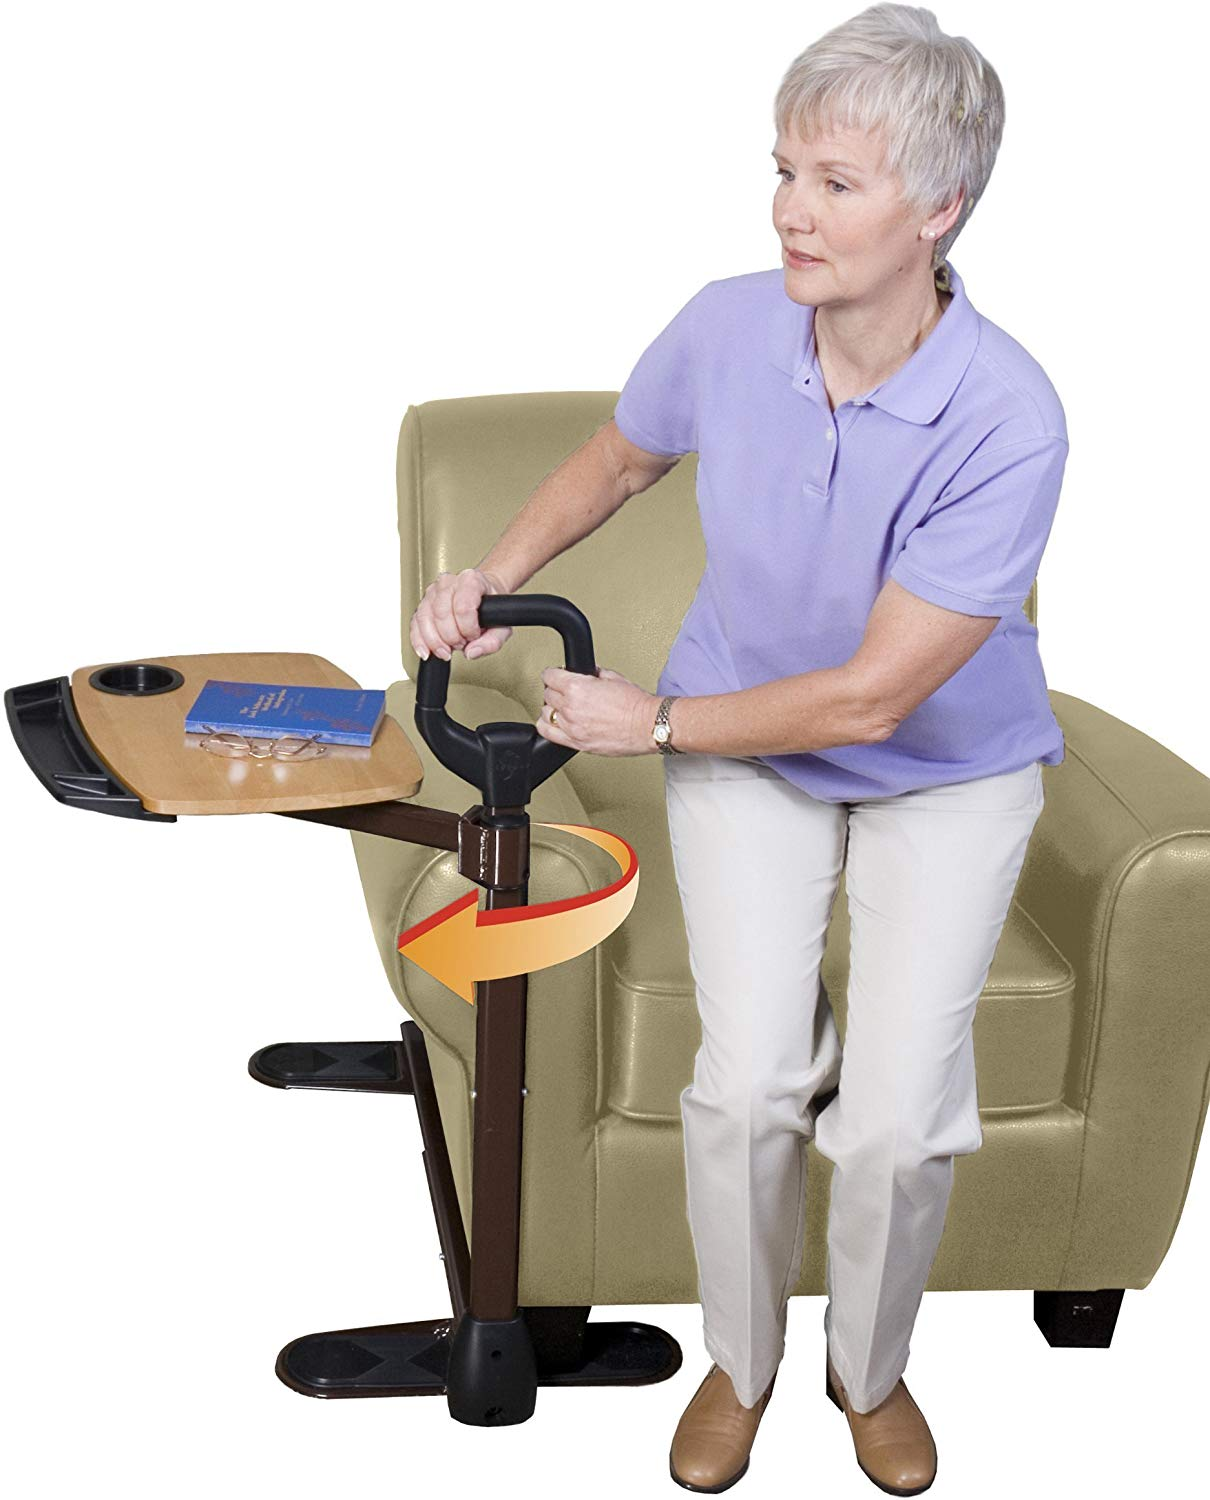 Review of Able Life Able Tray Table, with Ergonomic Stand Assist Safety Handle, Independent Living Aid